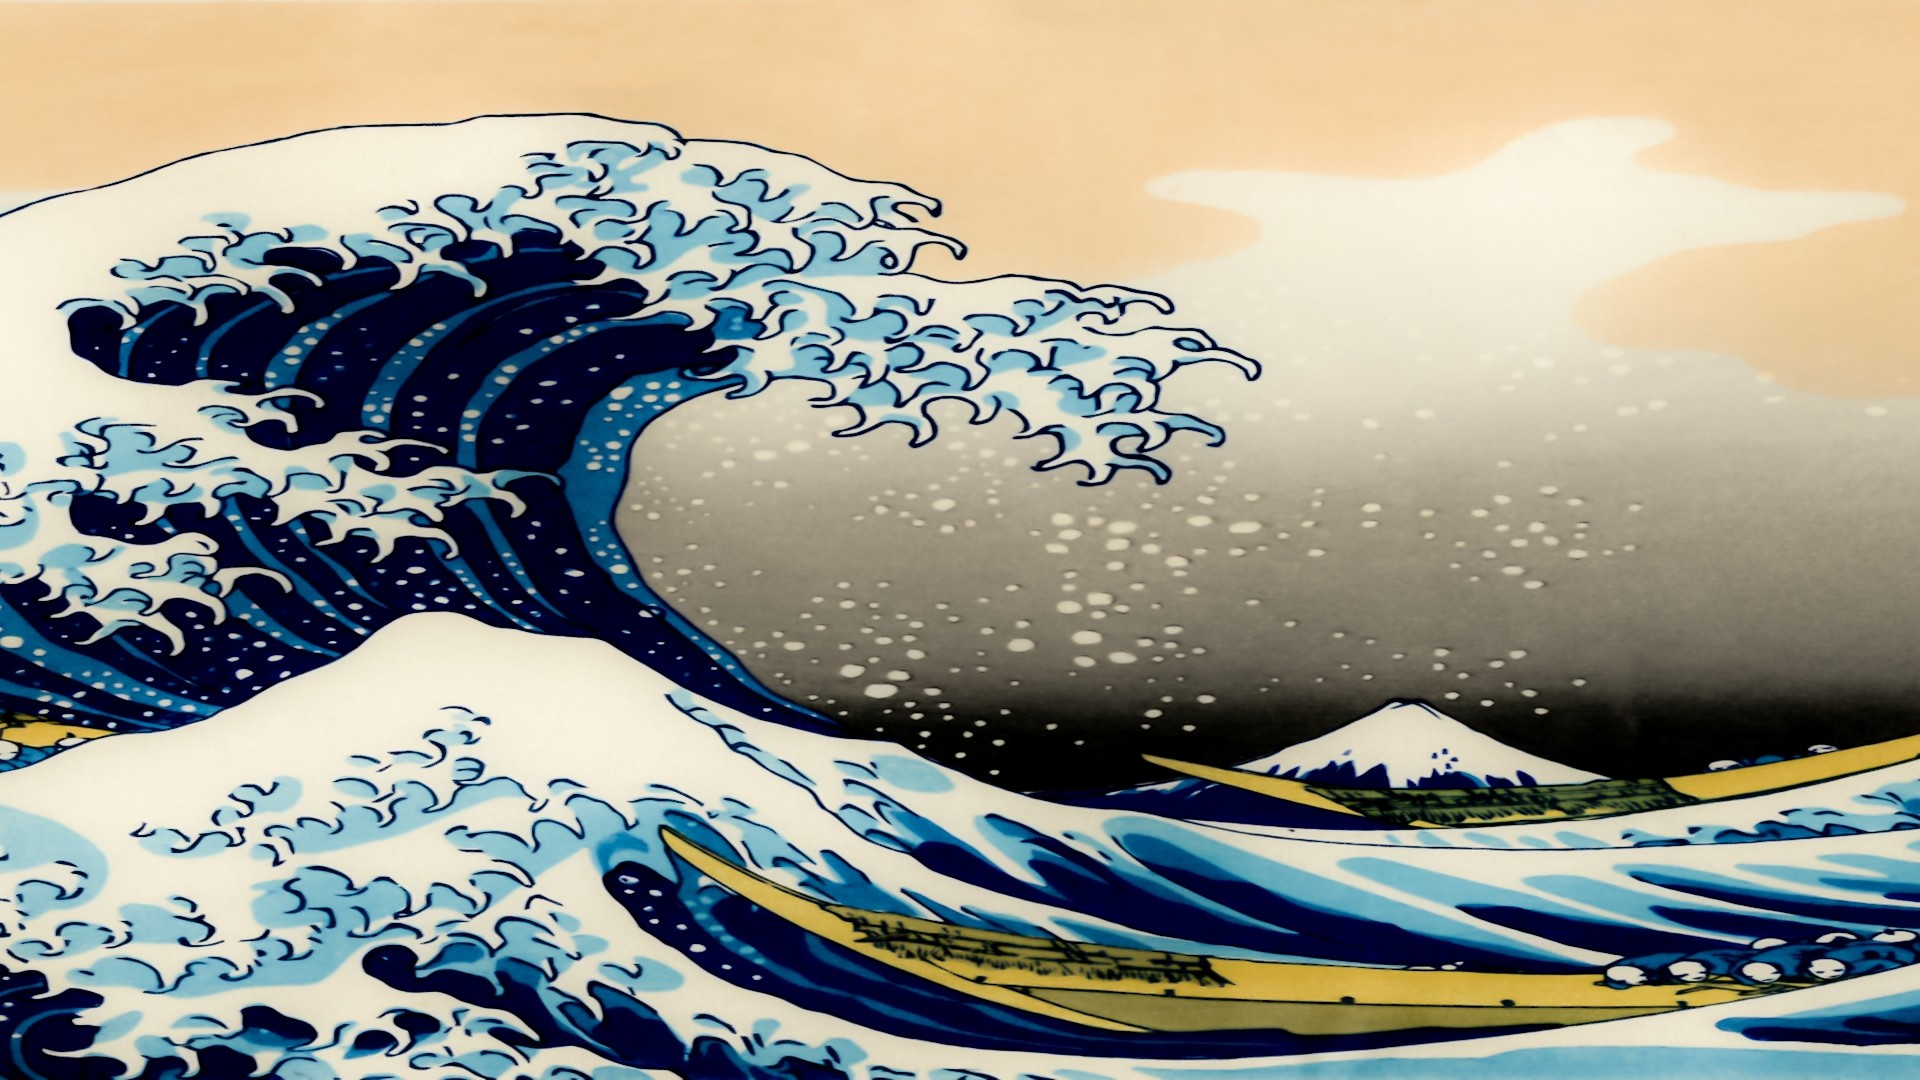 The Great Wave Off Kanagawa Wallpaper 60 Images